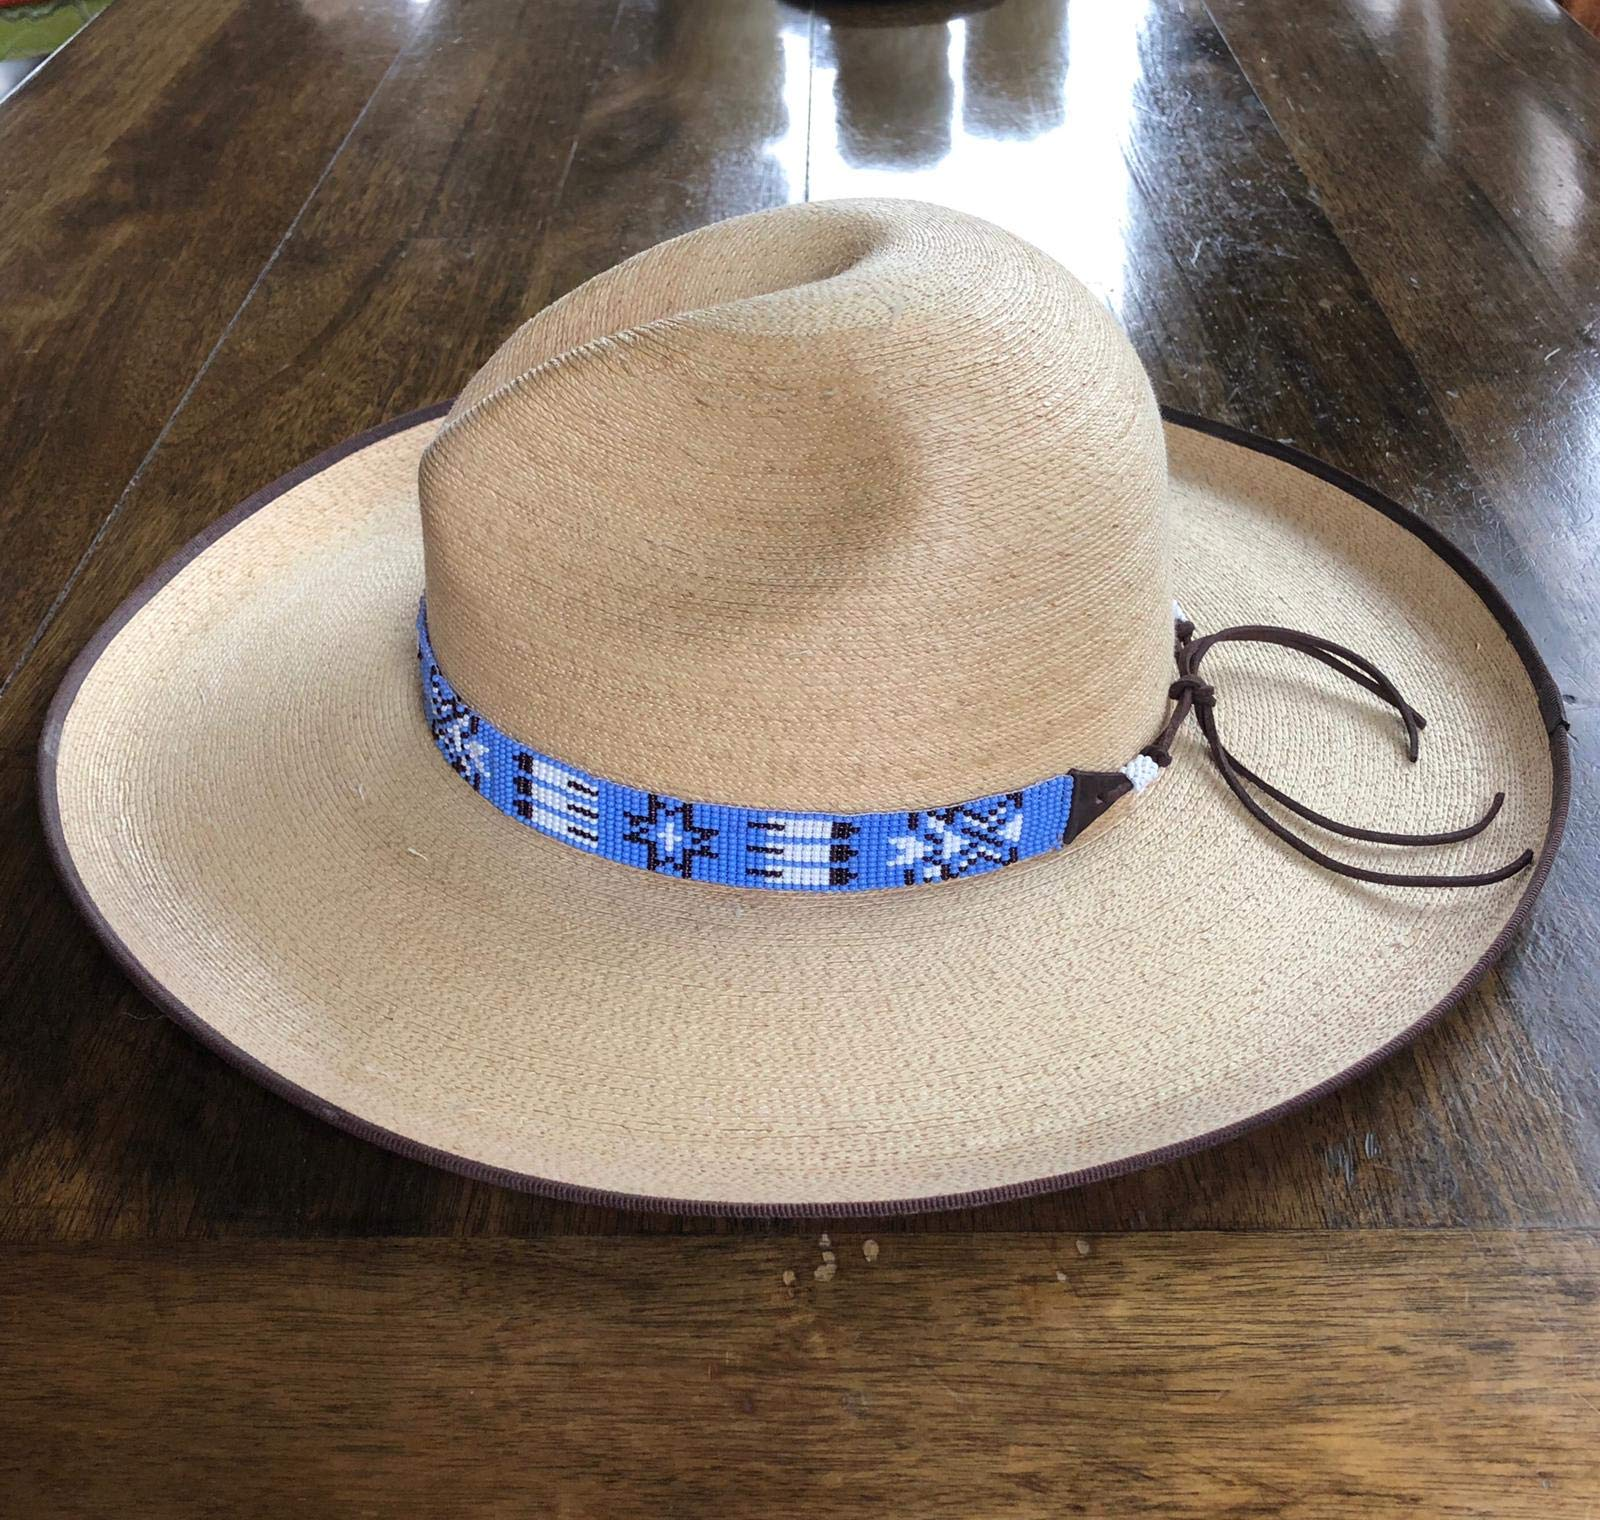 Mayan Arts Hat Band, Hatbands for Men and Women, Leather Straps, Cowboy Beaded Bands, White, Blue Paisley, Handmade in Guatemala 7/8'' X 21'' by Mayan Arts (Image #5)